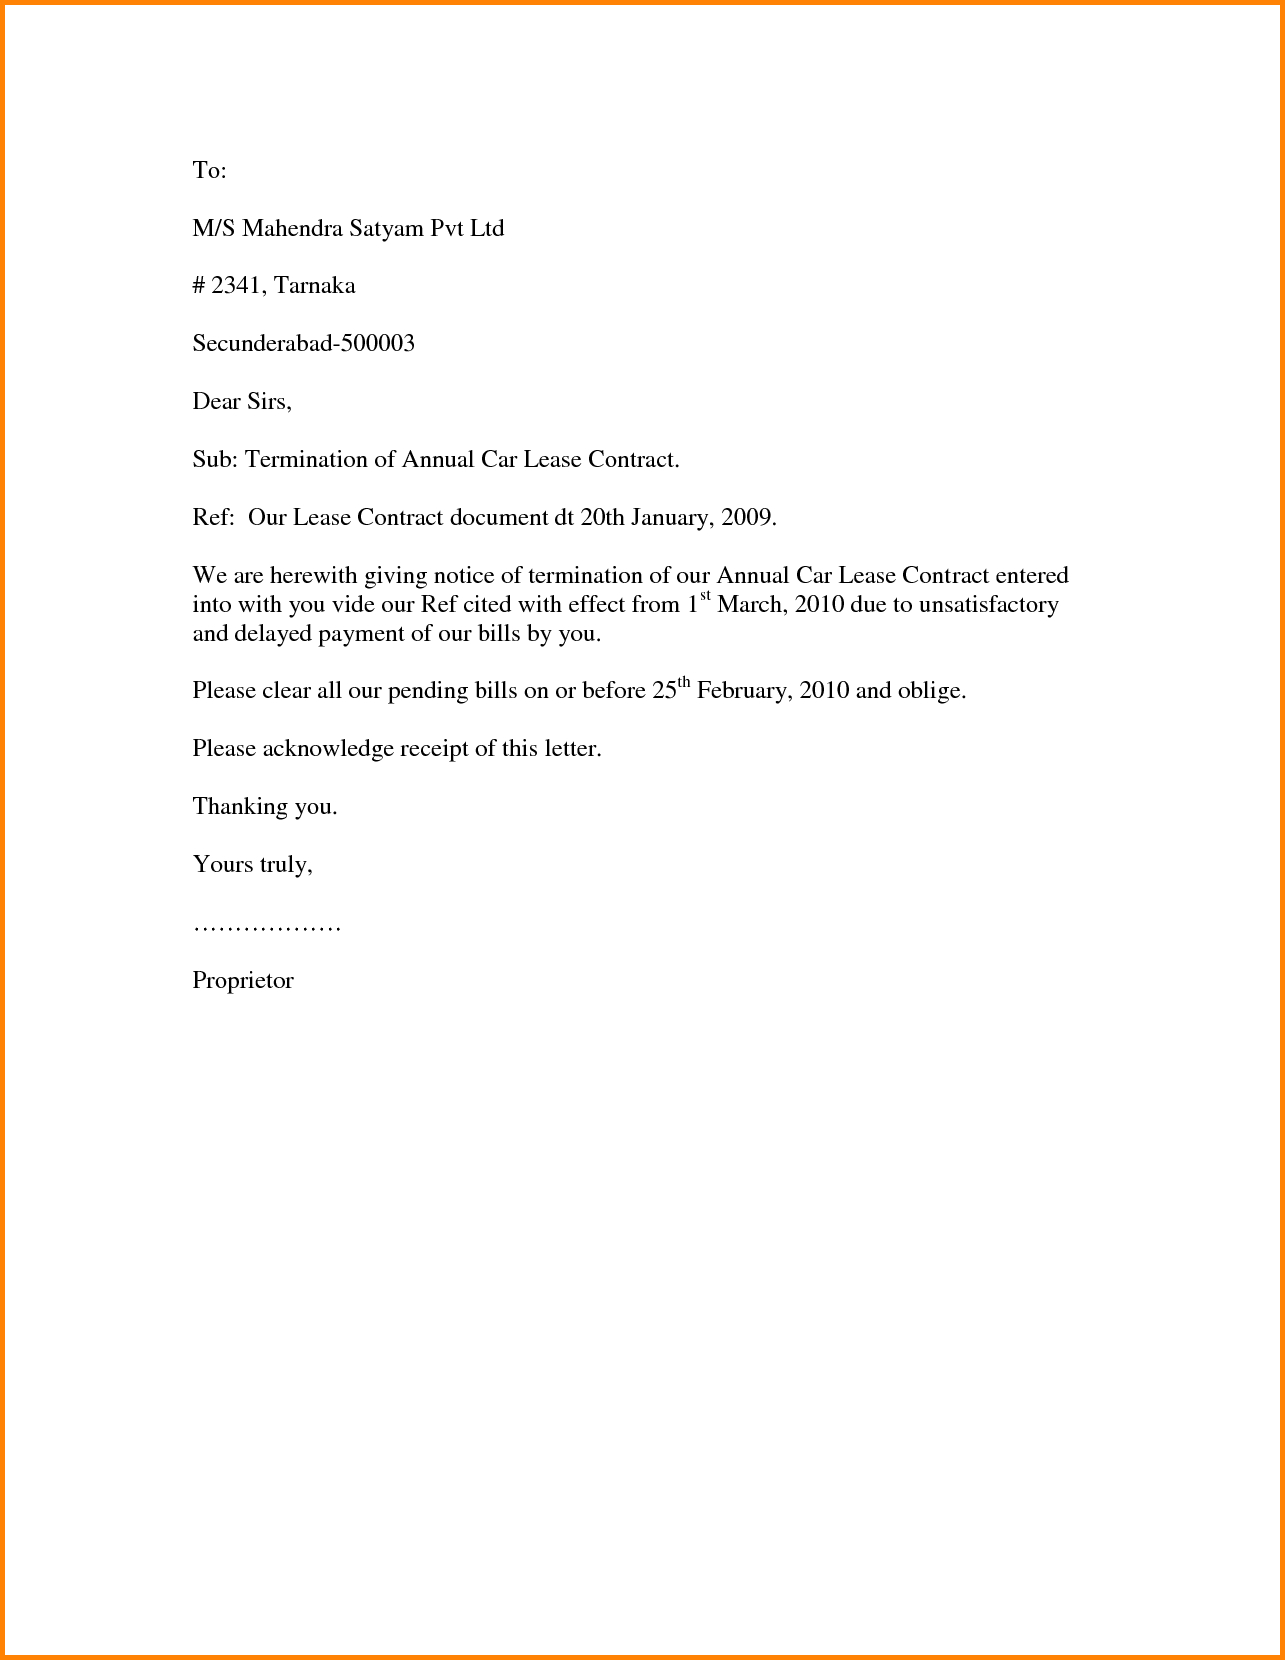 Rent Demand Letter Template - How to End Letters How to End A Resignation Letter Fancy Resume How